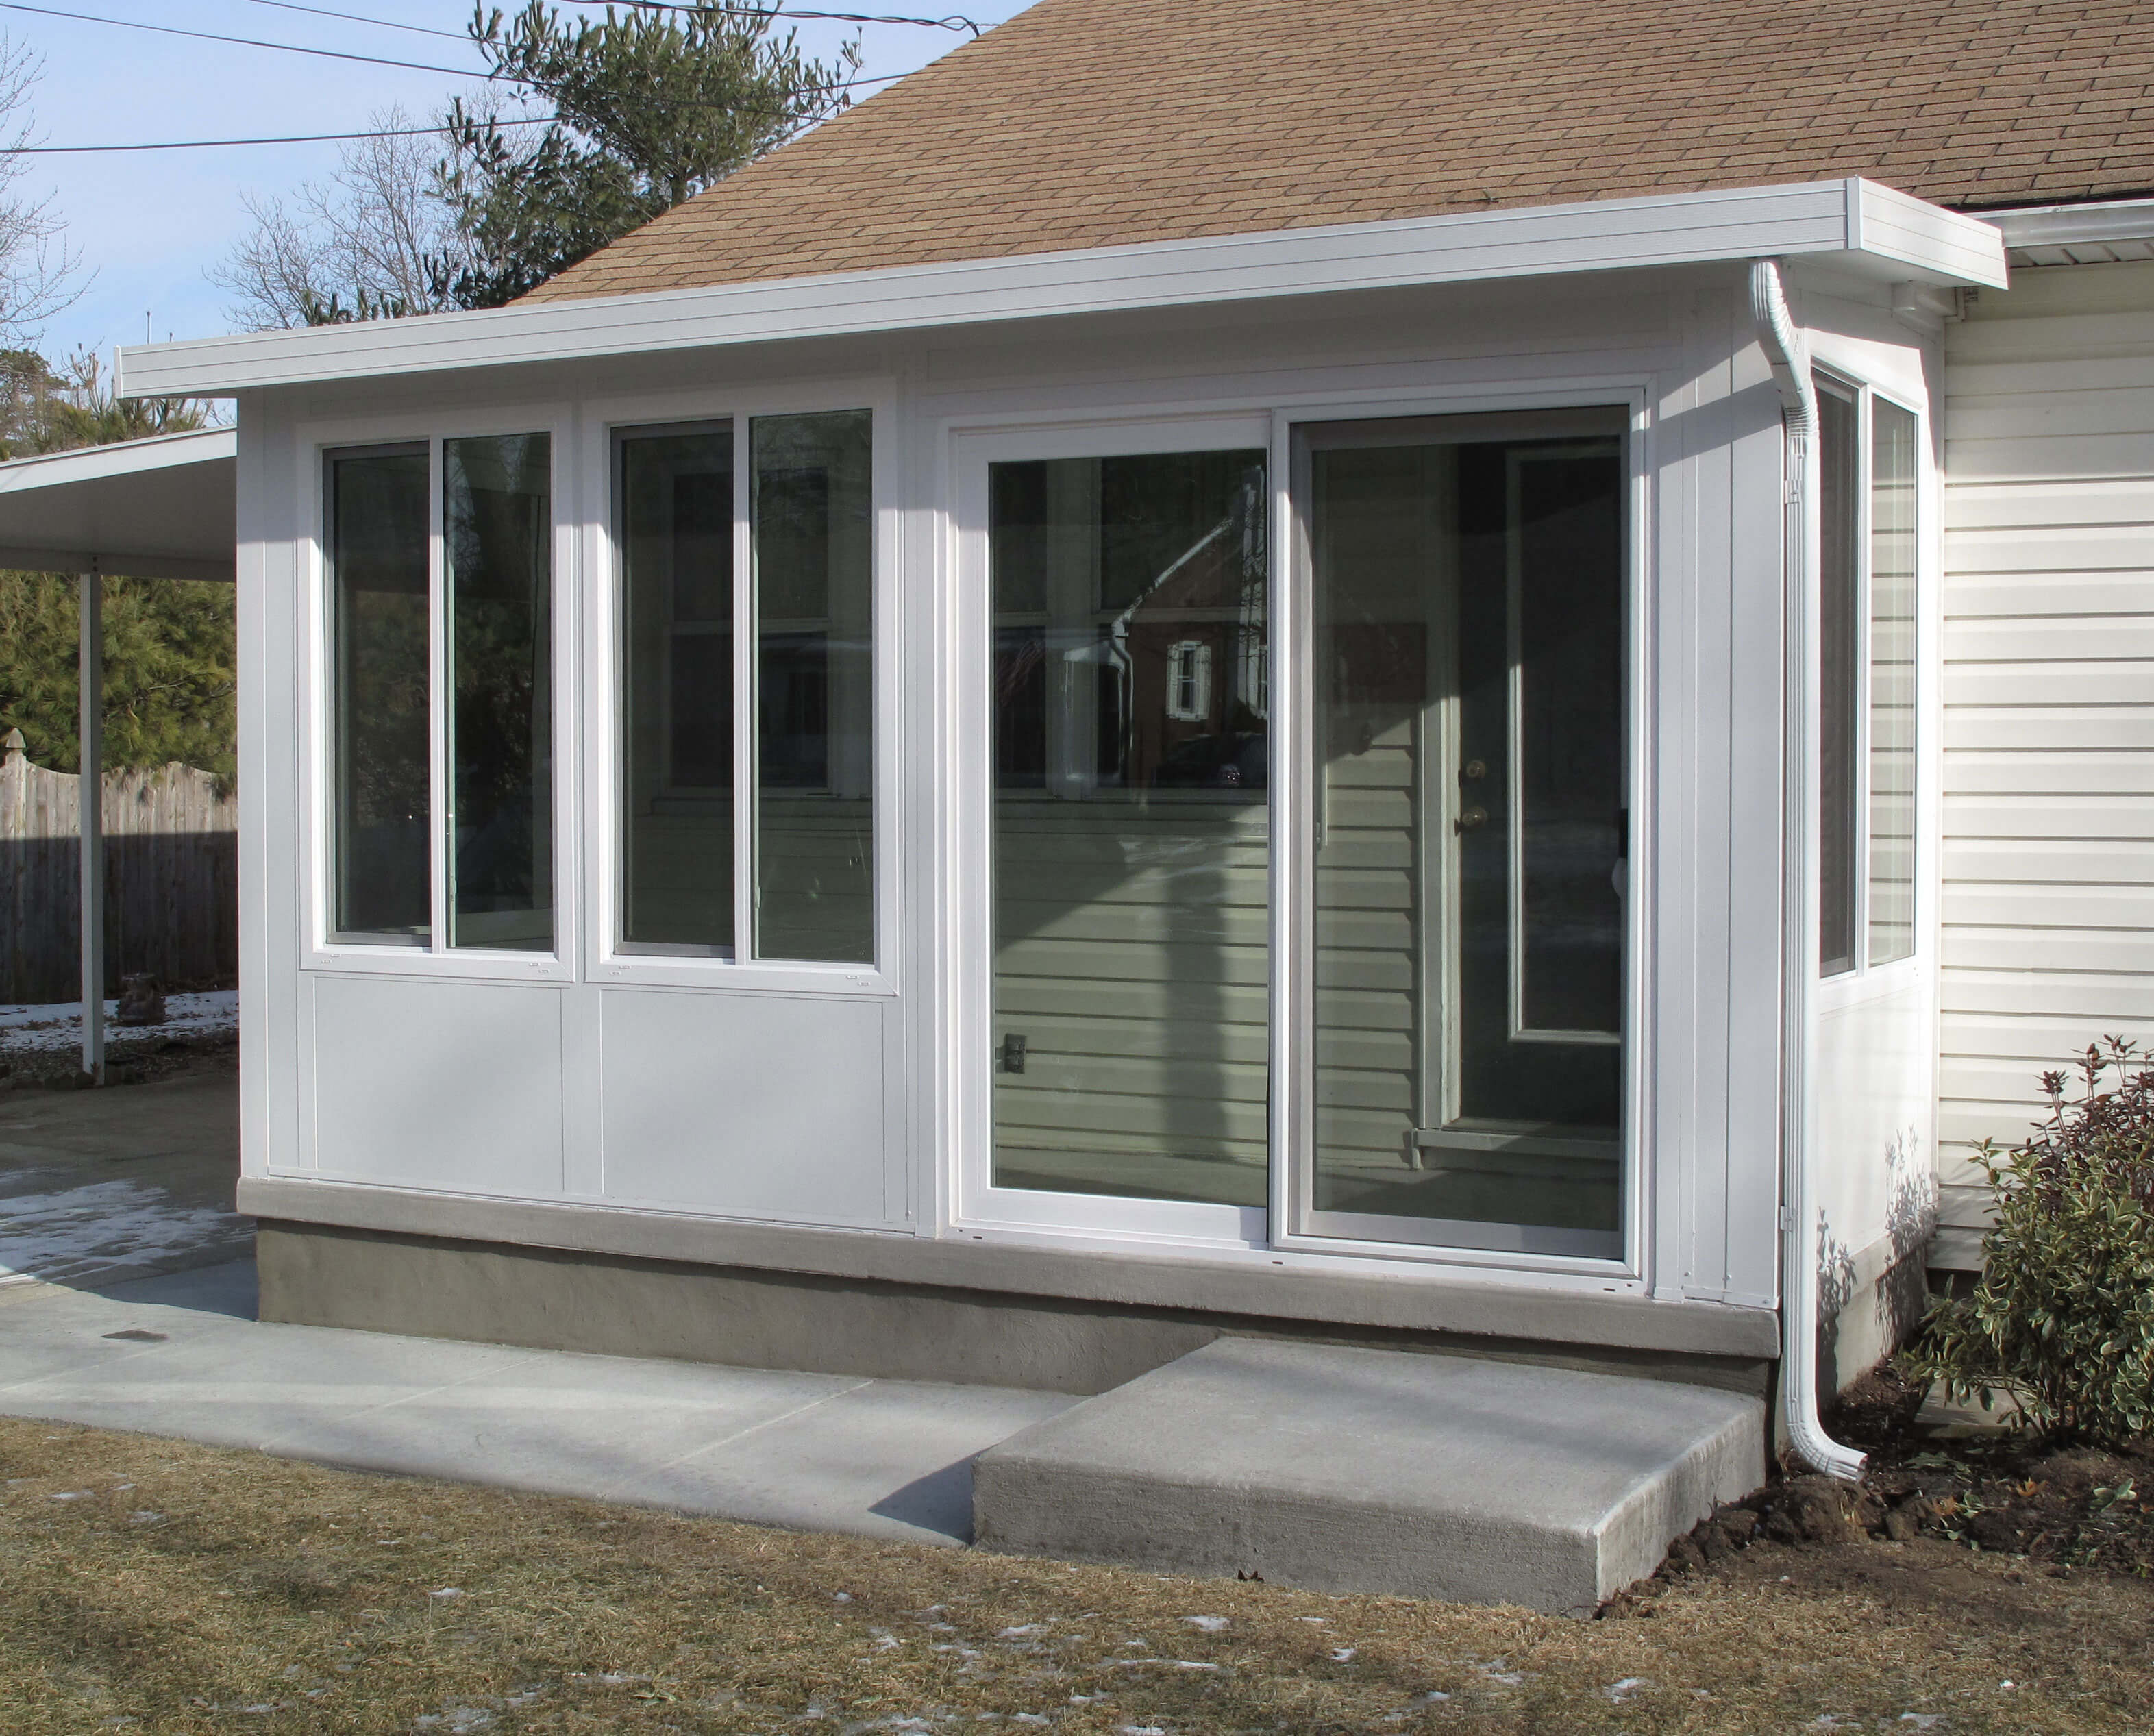 Awning contractor cape may nj patio rooms miamisomers for Backyard sunroom